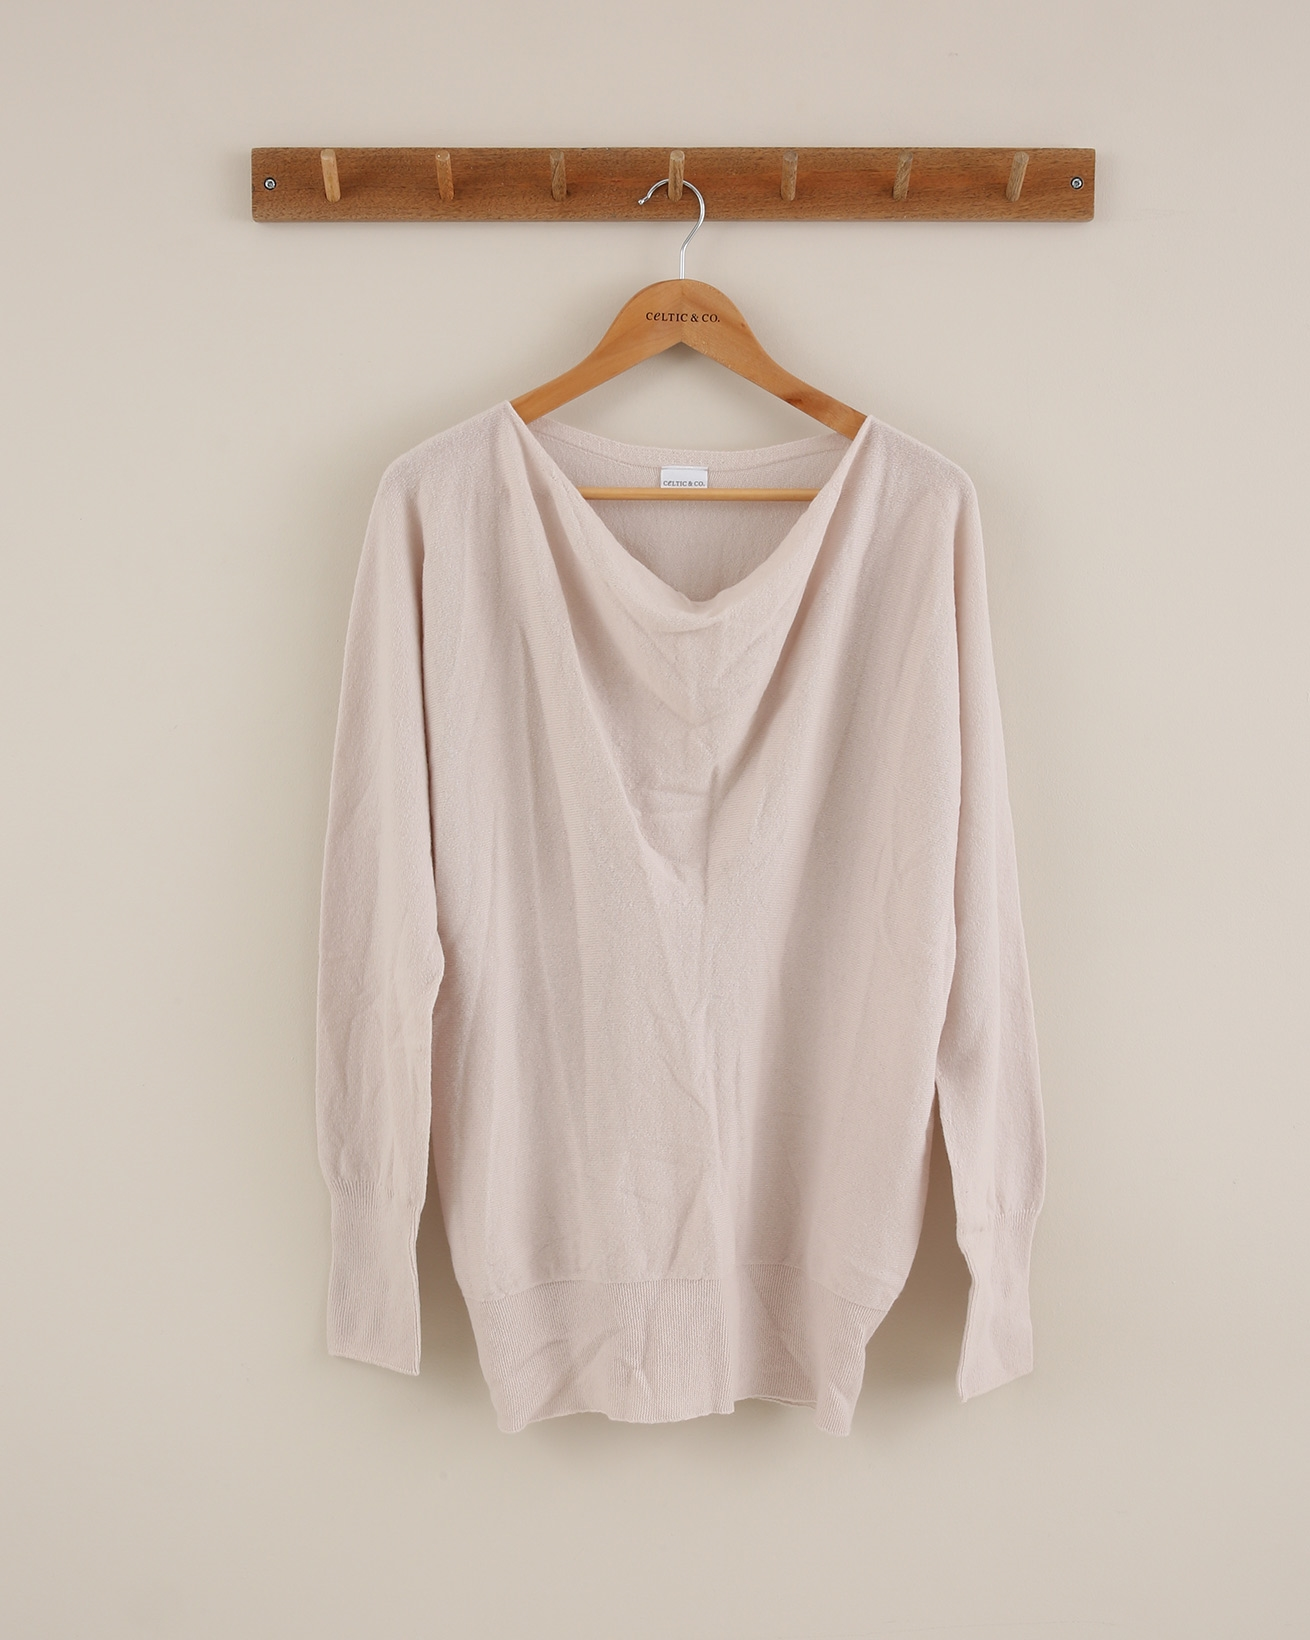 Soft Cowl Jumper - Size Small - Pale Peony - 1841